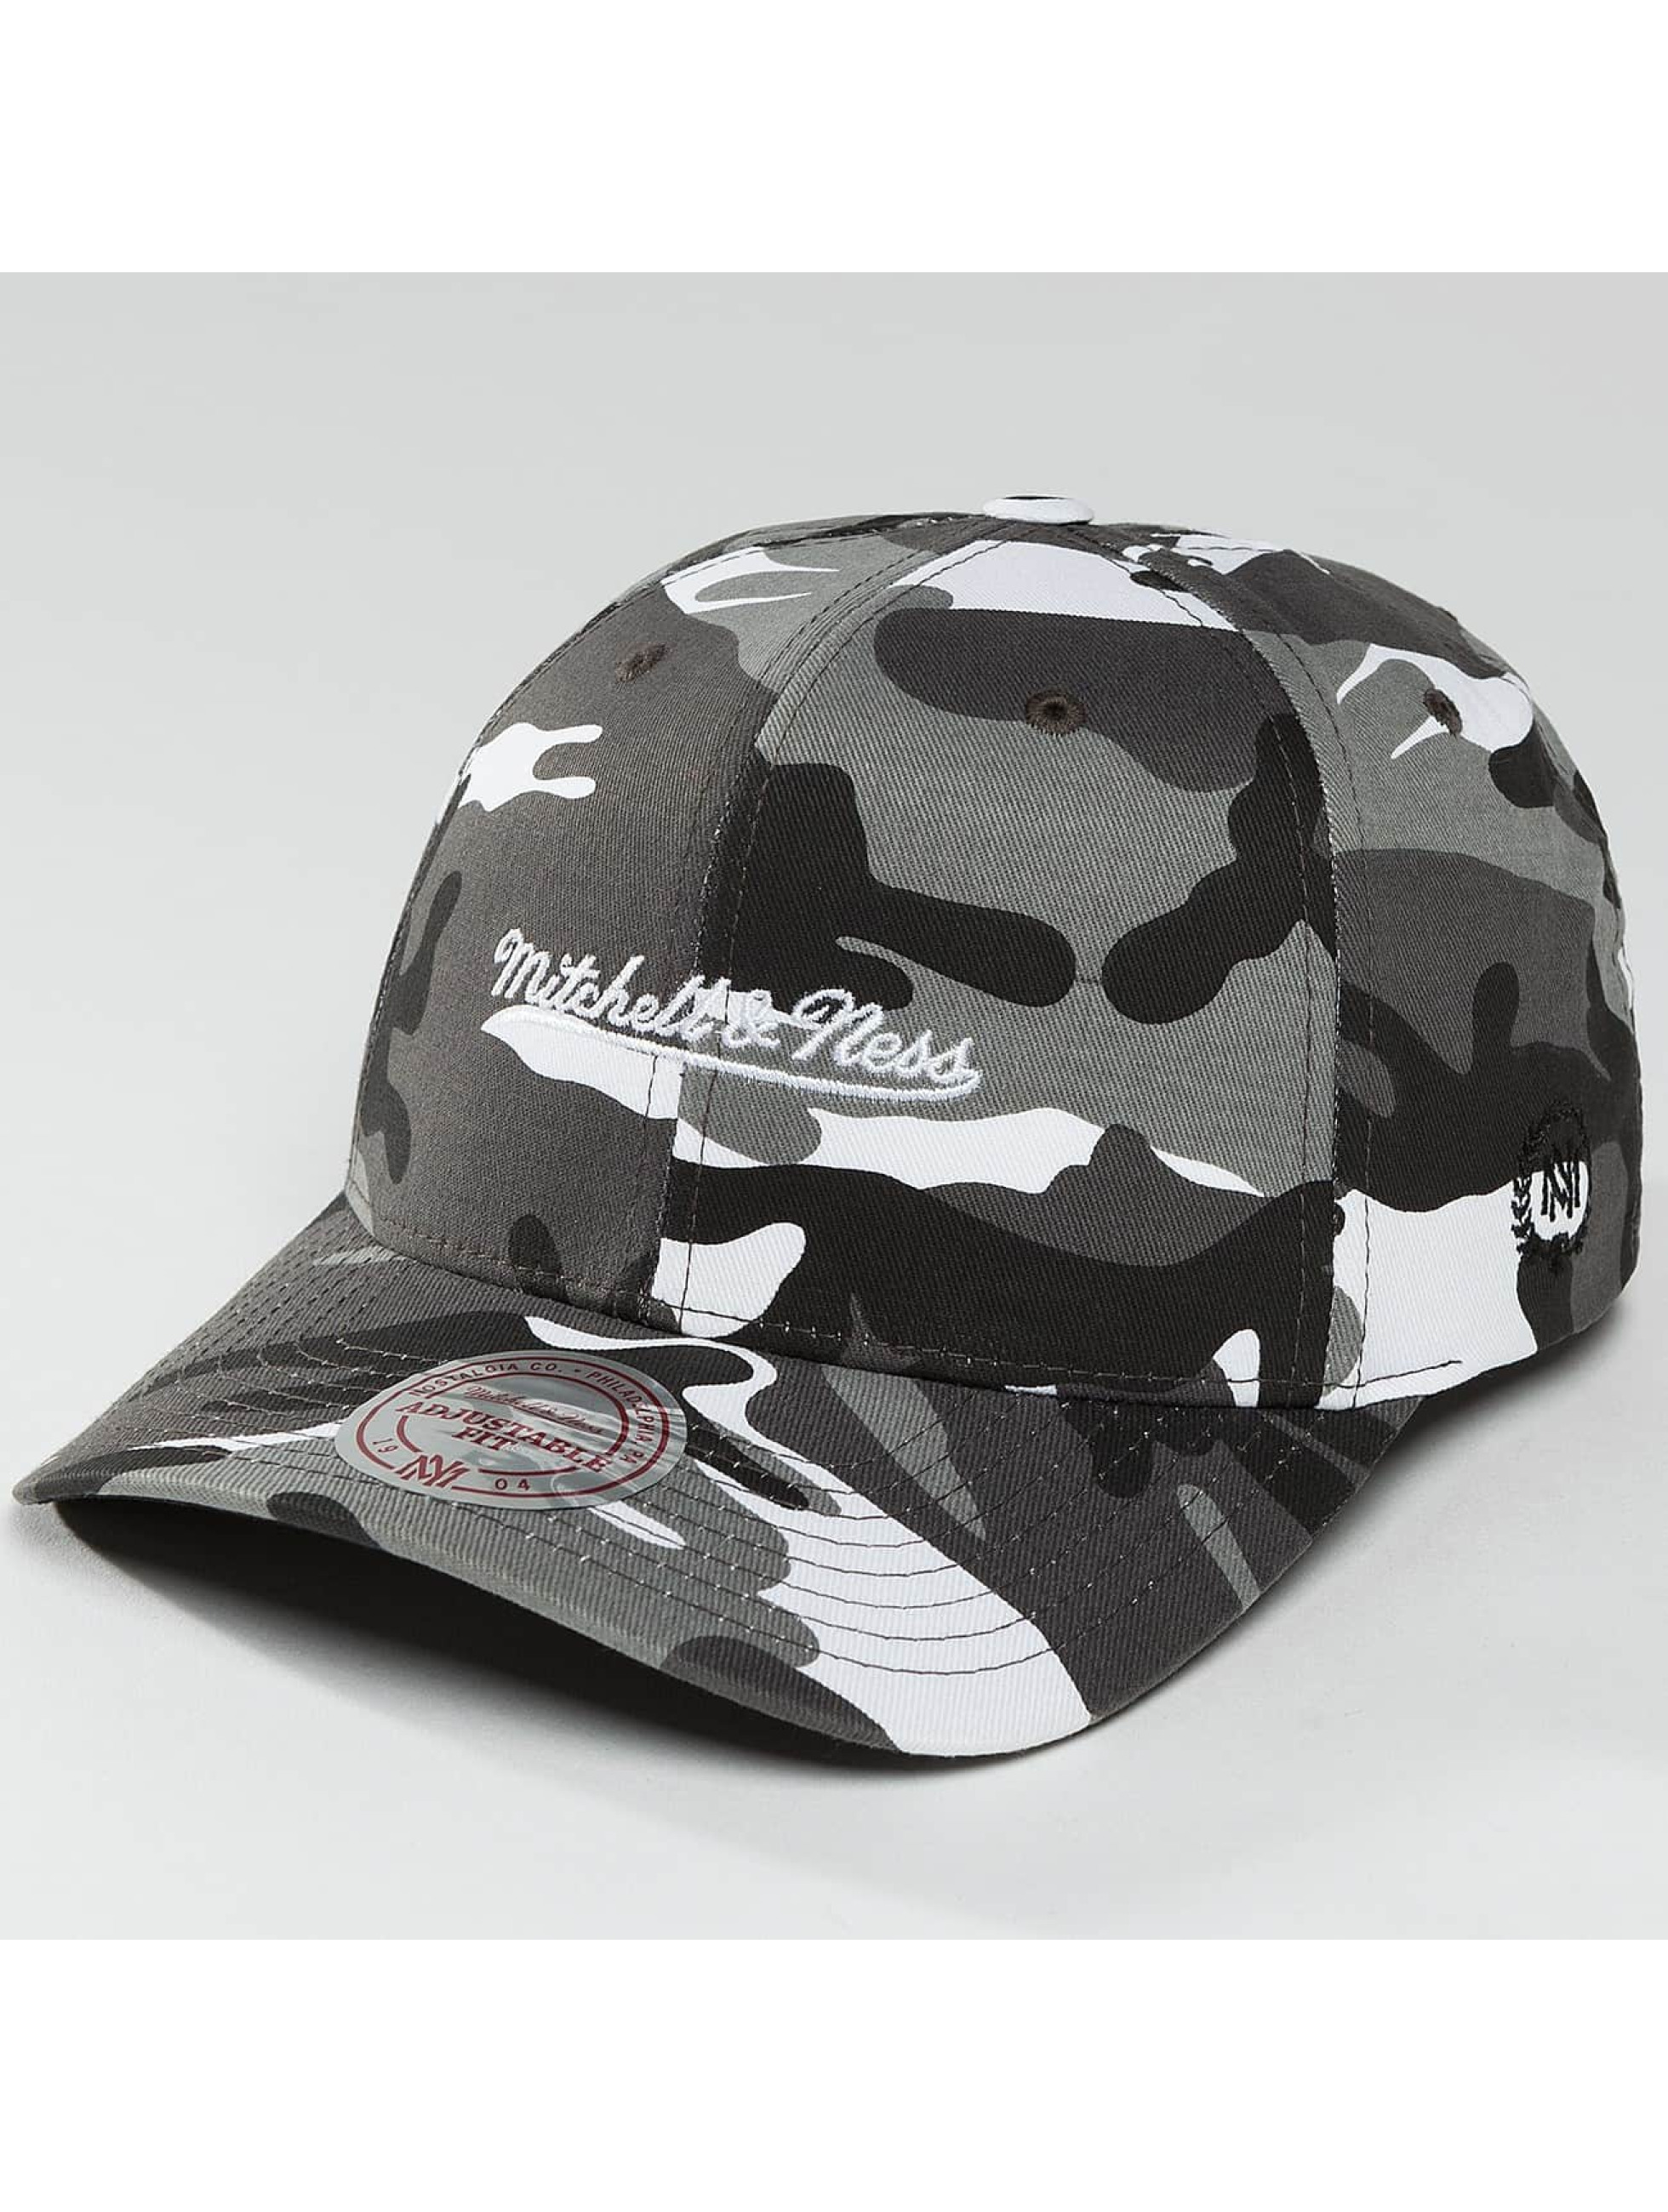 Mitchell & Ness Casquette Snapback & Strapback 110 The Camo & Suede camouflage